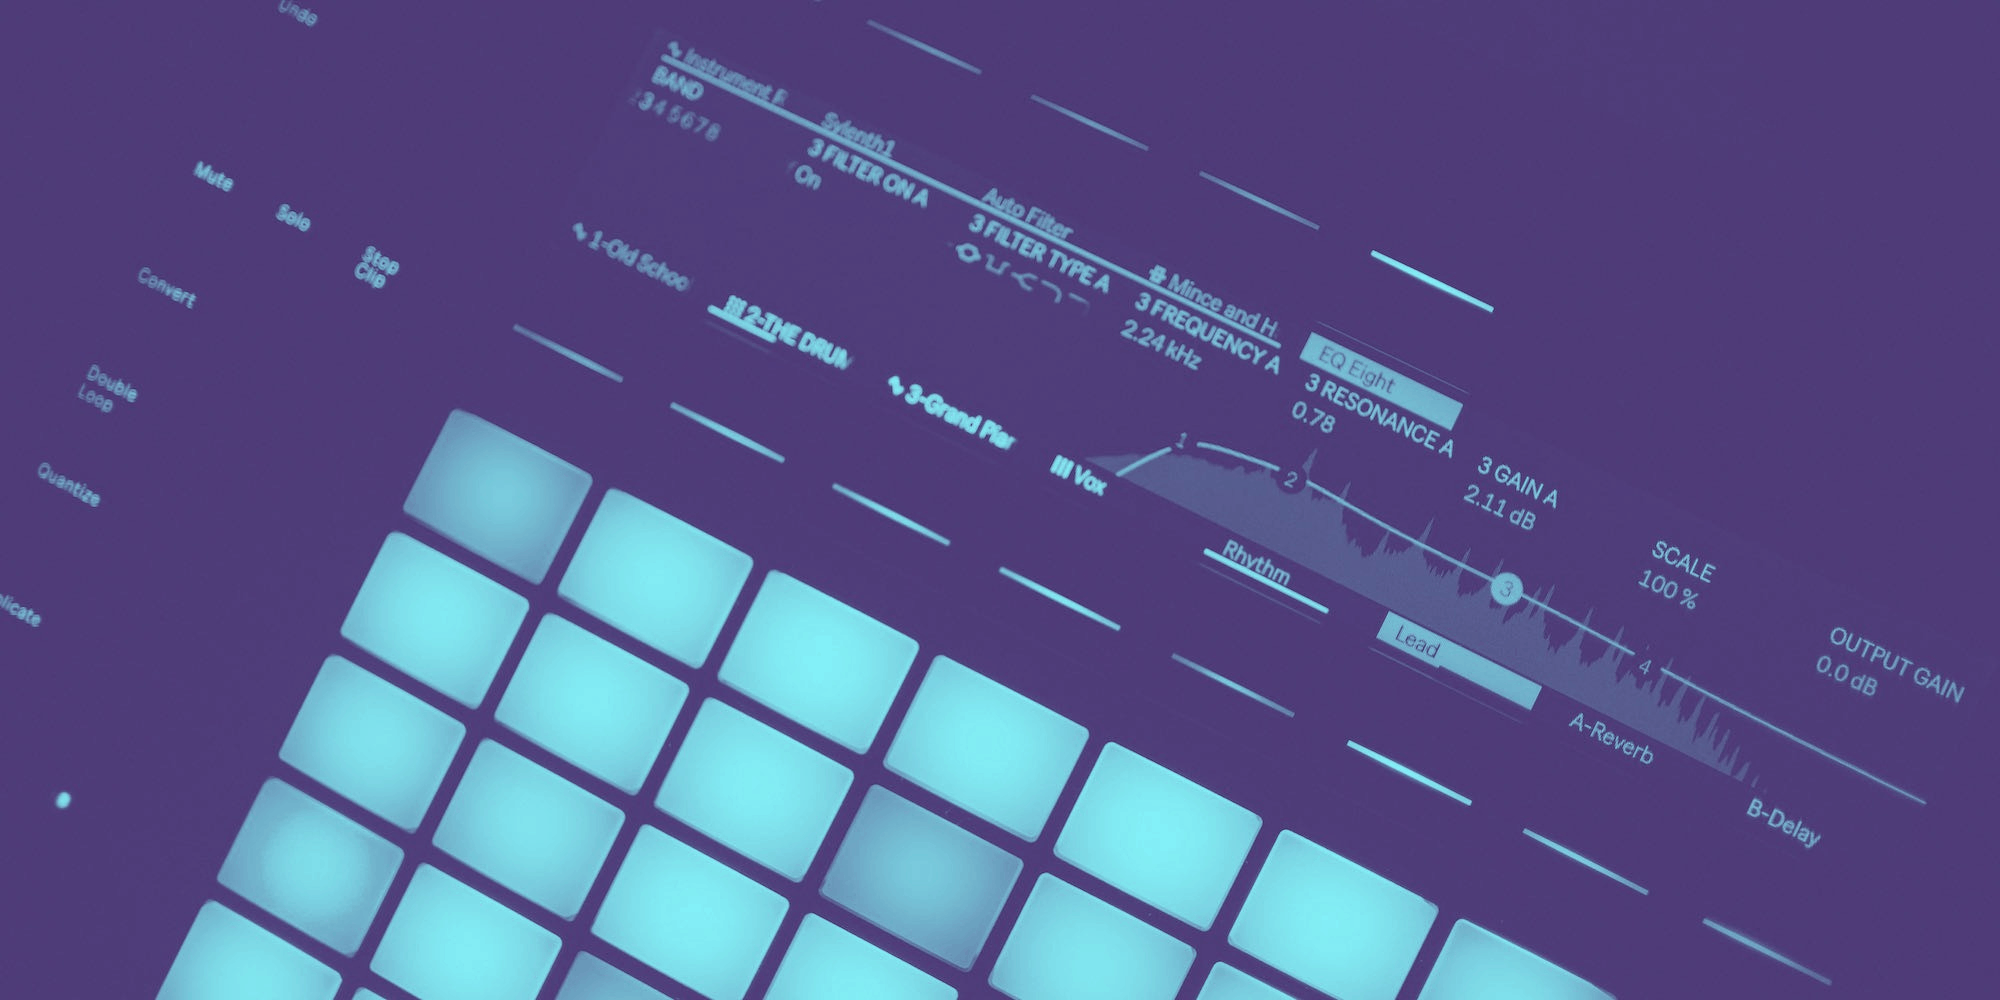 Hyperbits Best Ways to Learn Music Production